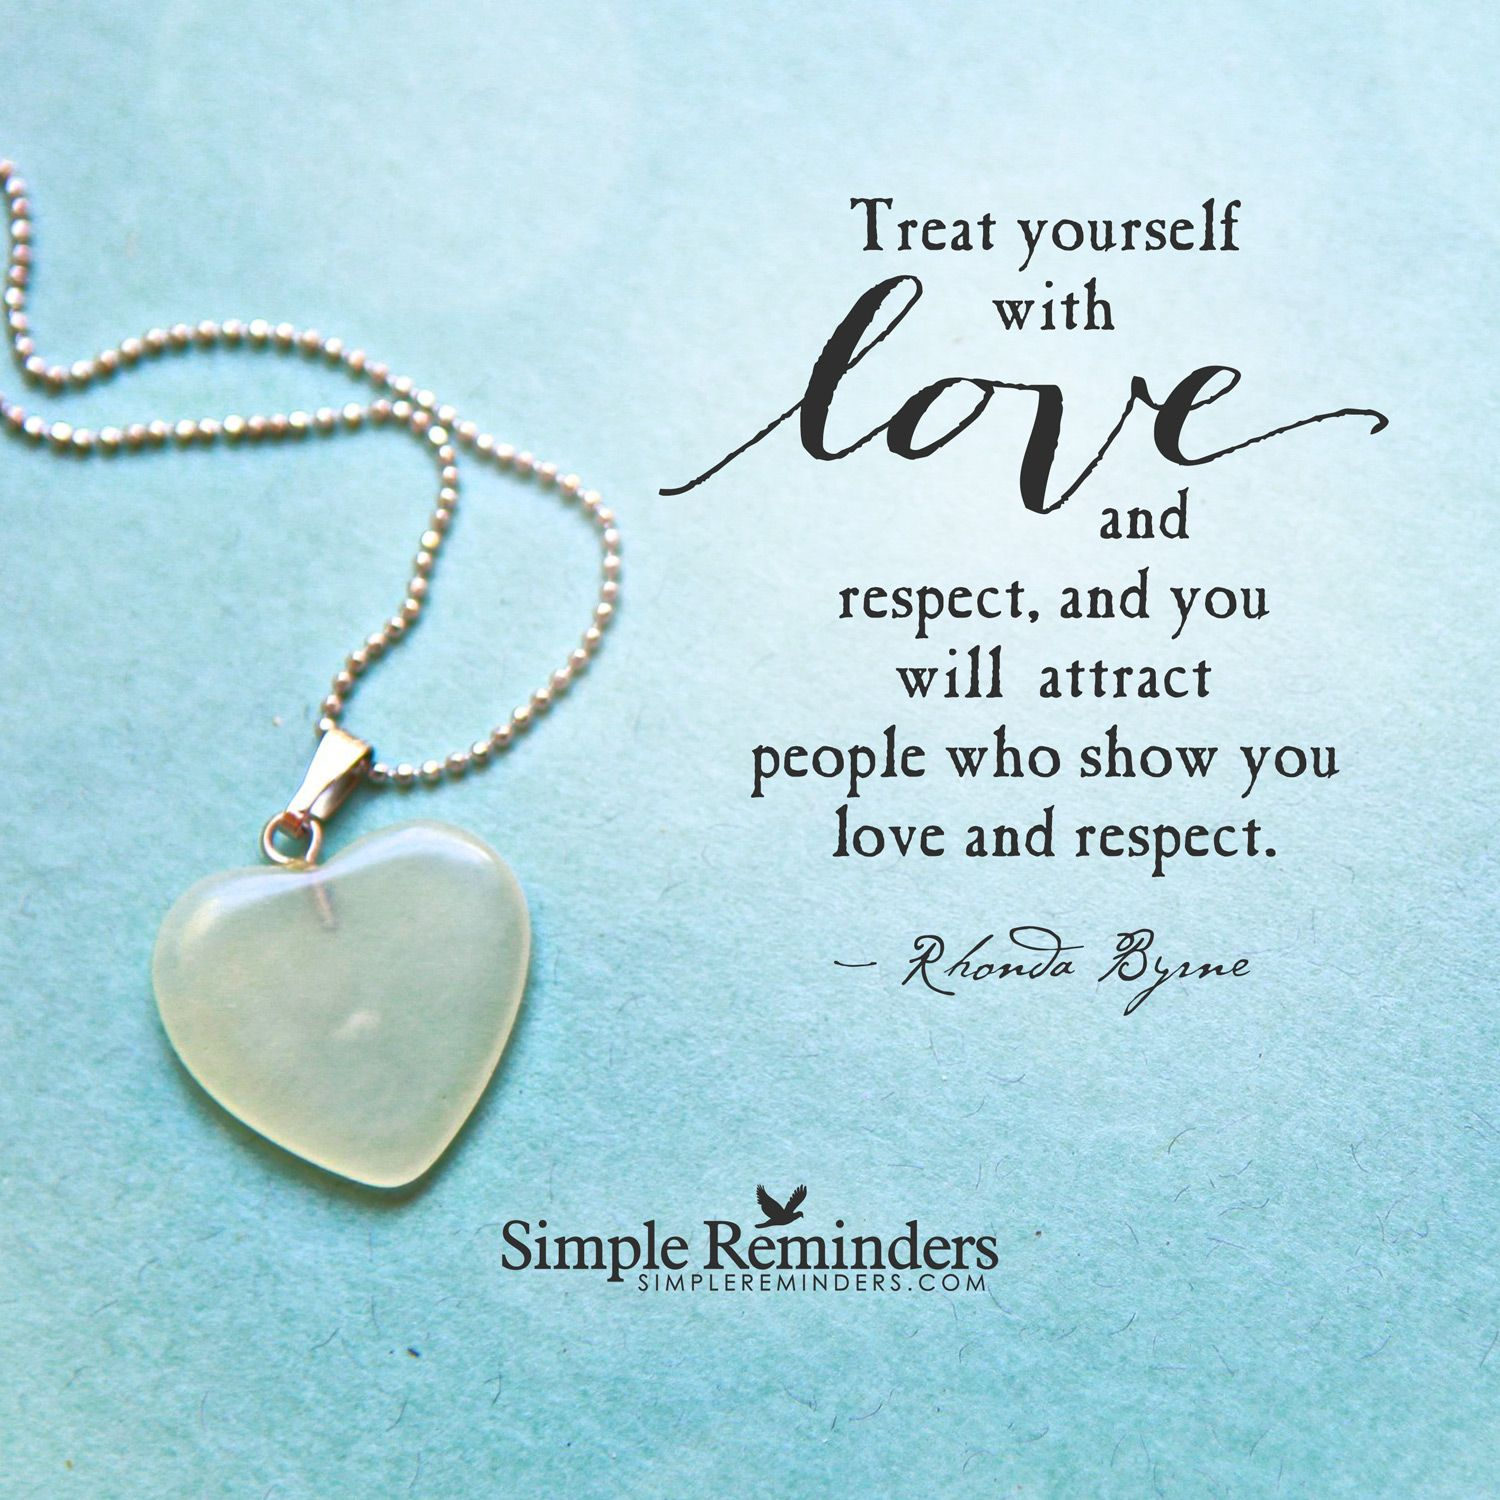 Attirant Reminder Quotes · Treat Yourself With Love And Respect ...